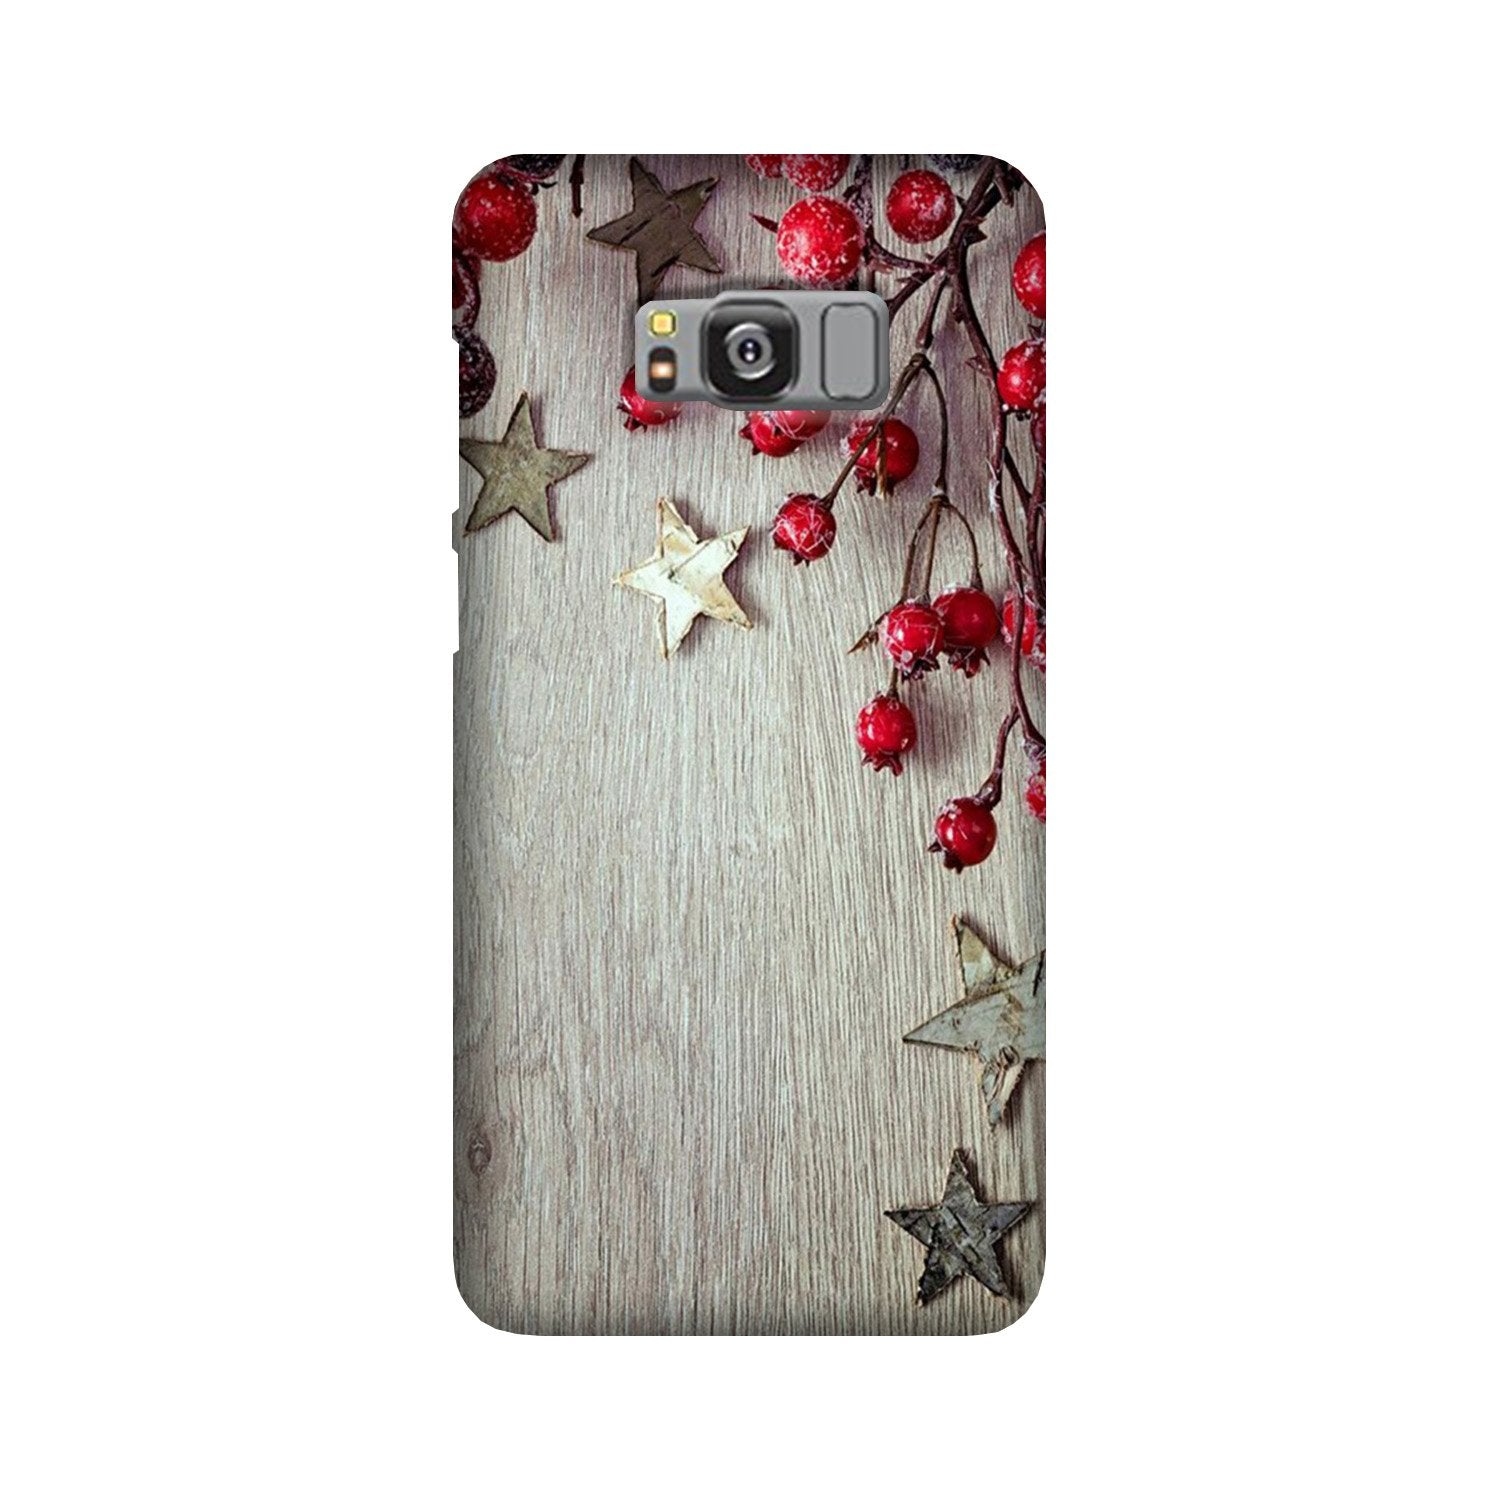 Stars Case for Galaxy S8